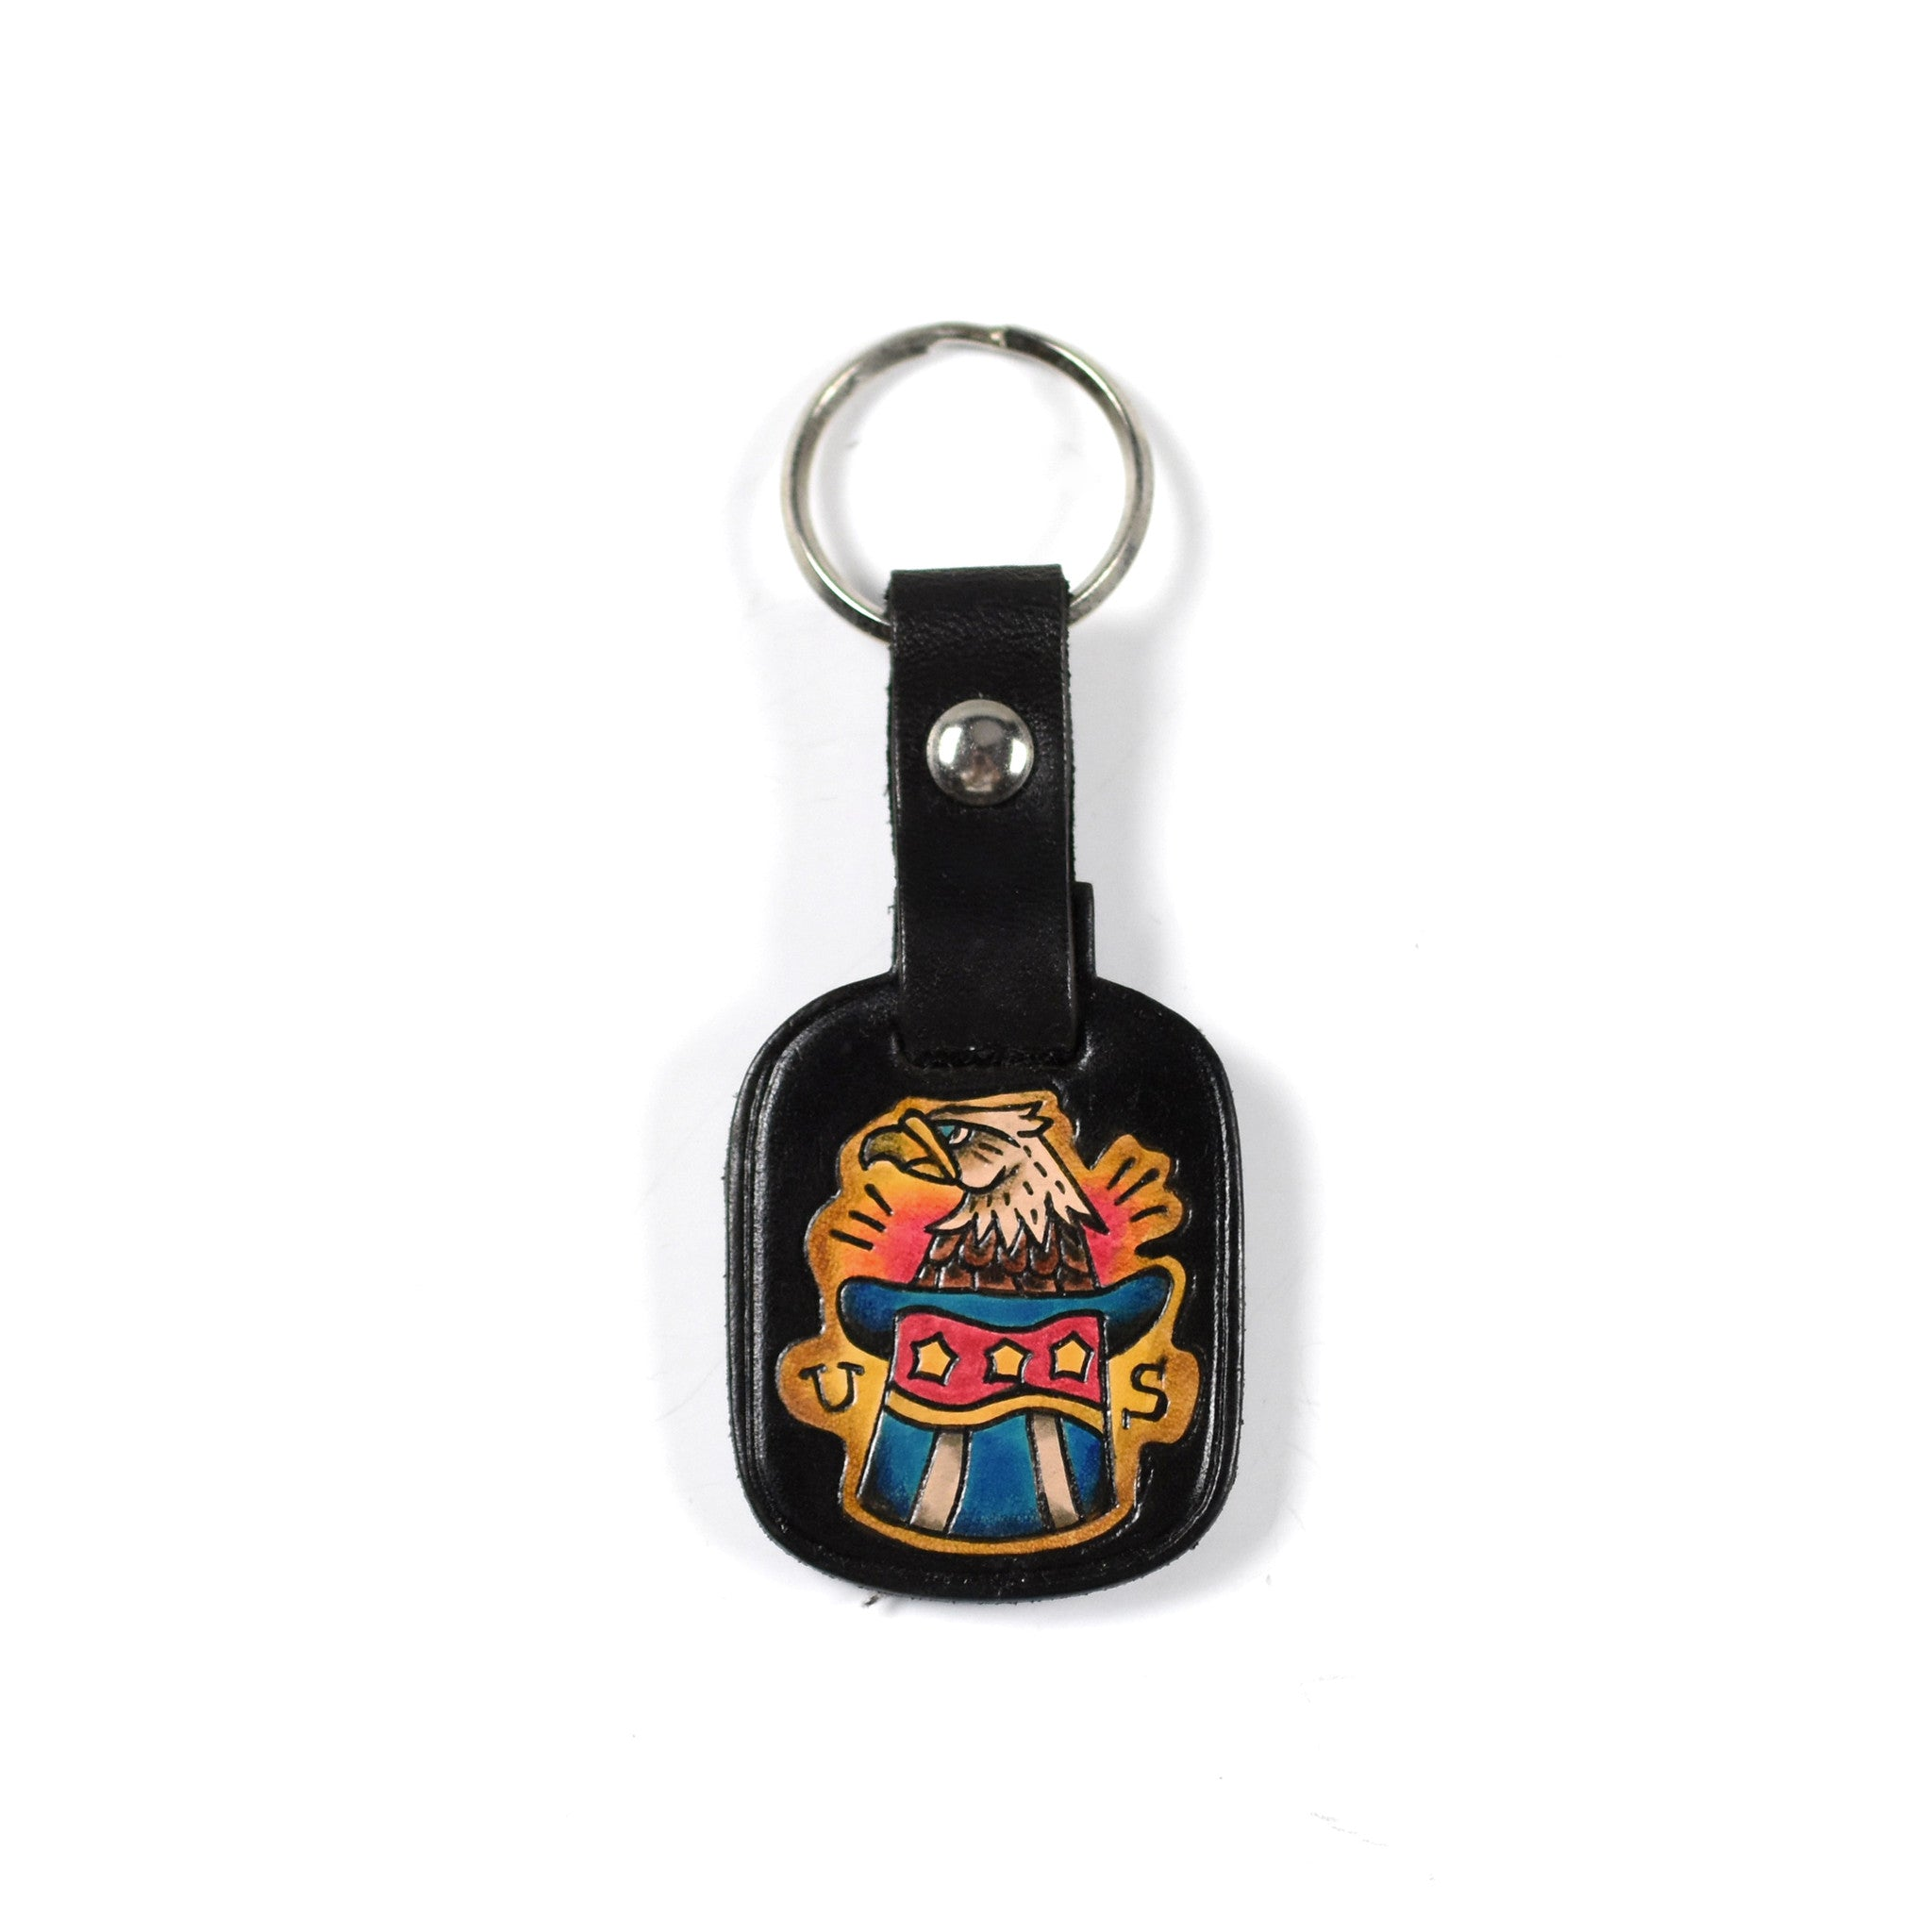 May club -【GDW Studio】Key Chain - Eagle